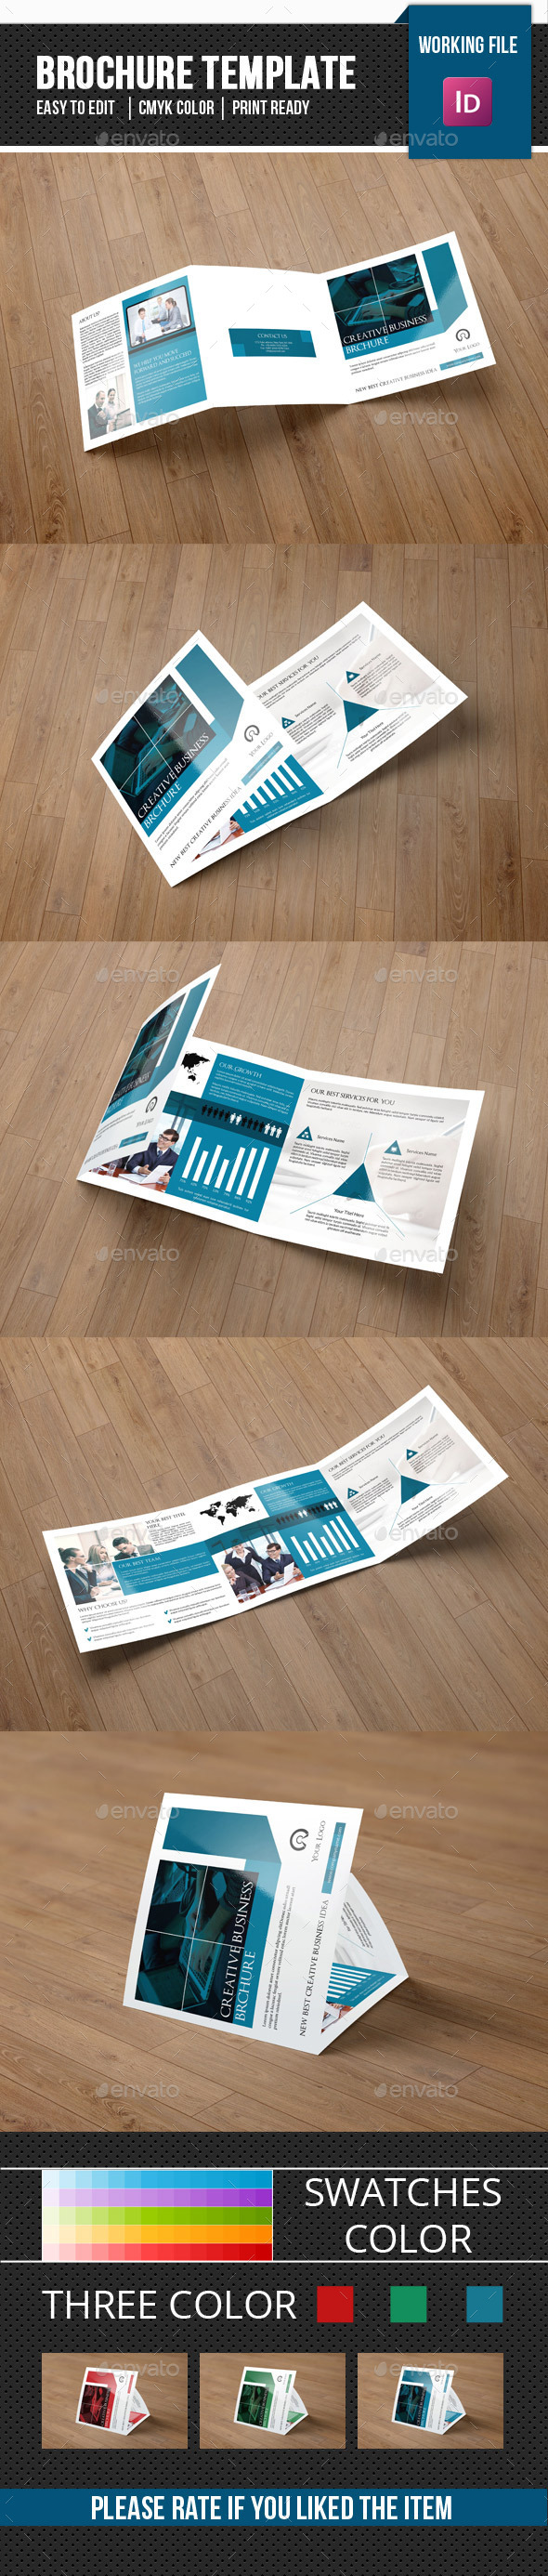 Corporate Square Trifold Brochure-V73 - Corporate Brochures